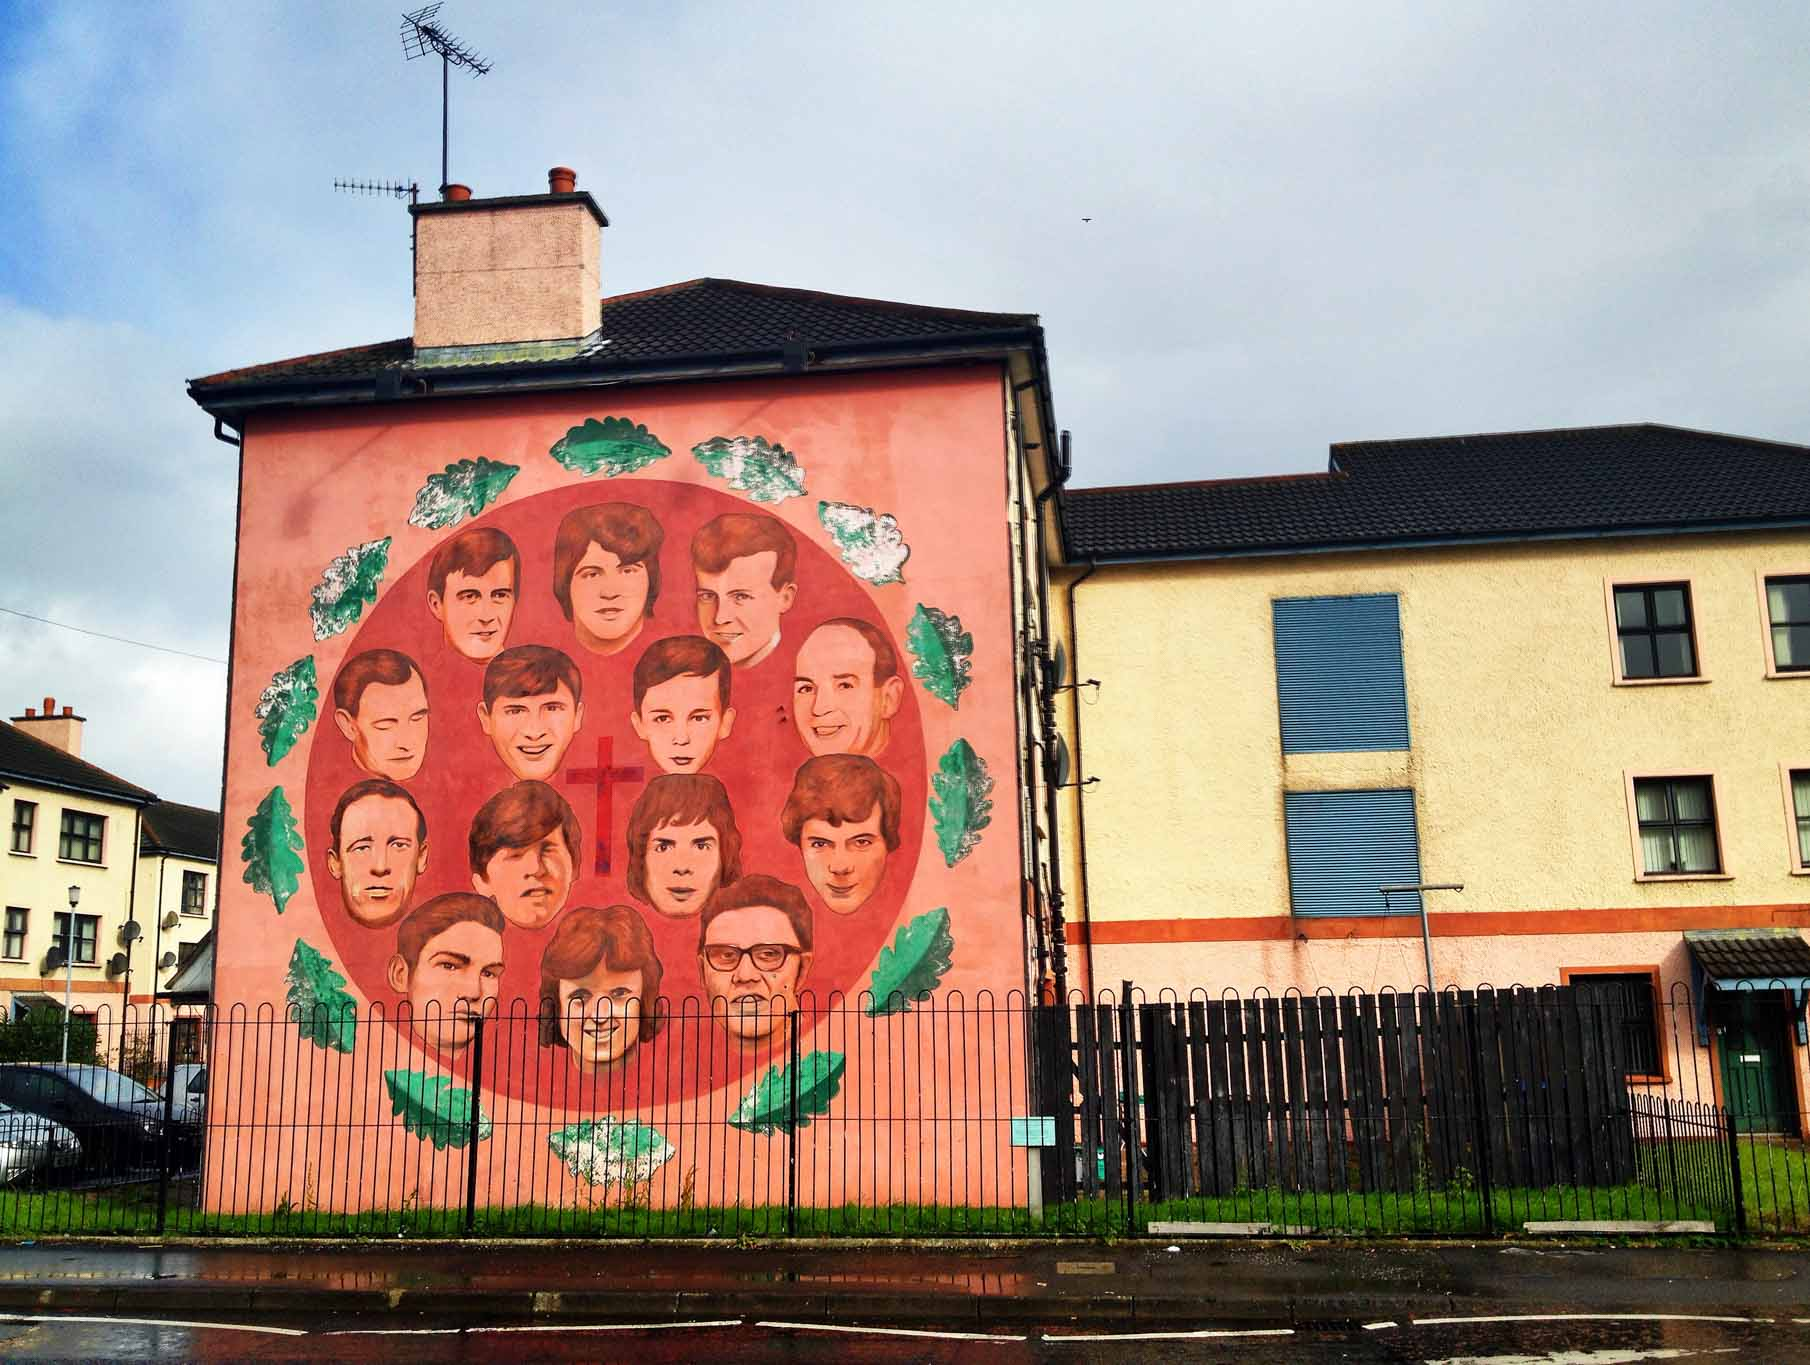 Mural with faces in a red circle memorializing the victims of Bloody Sunday